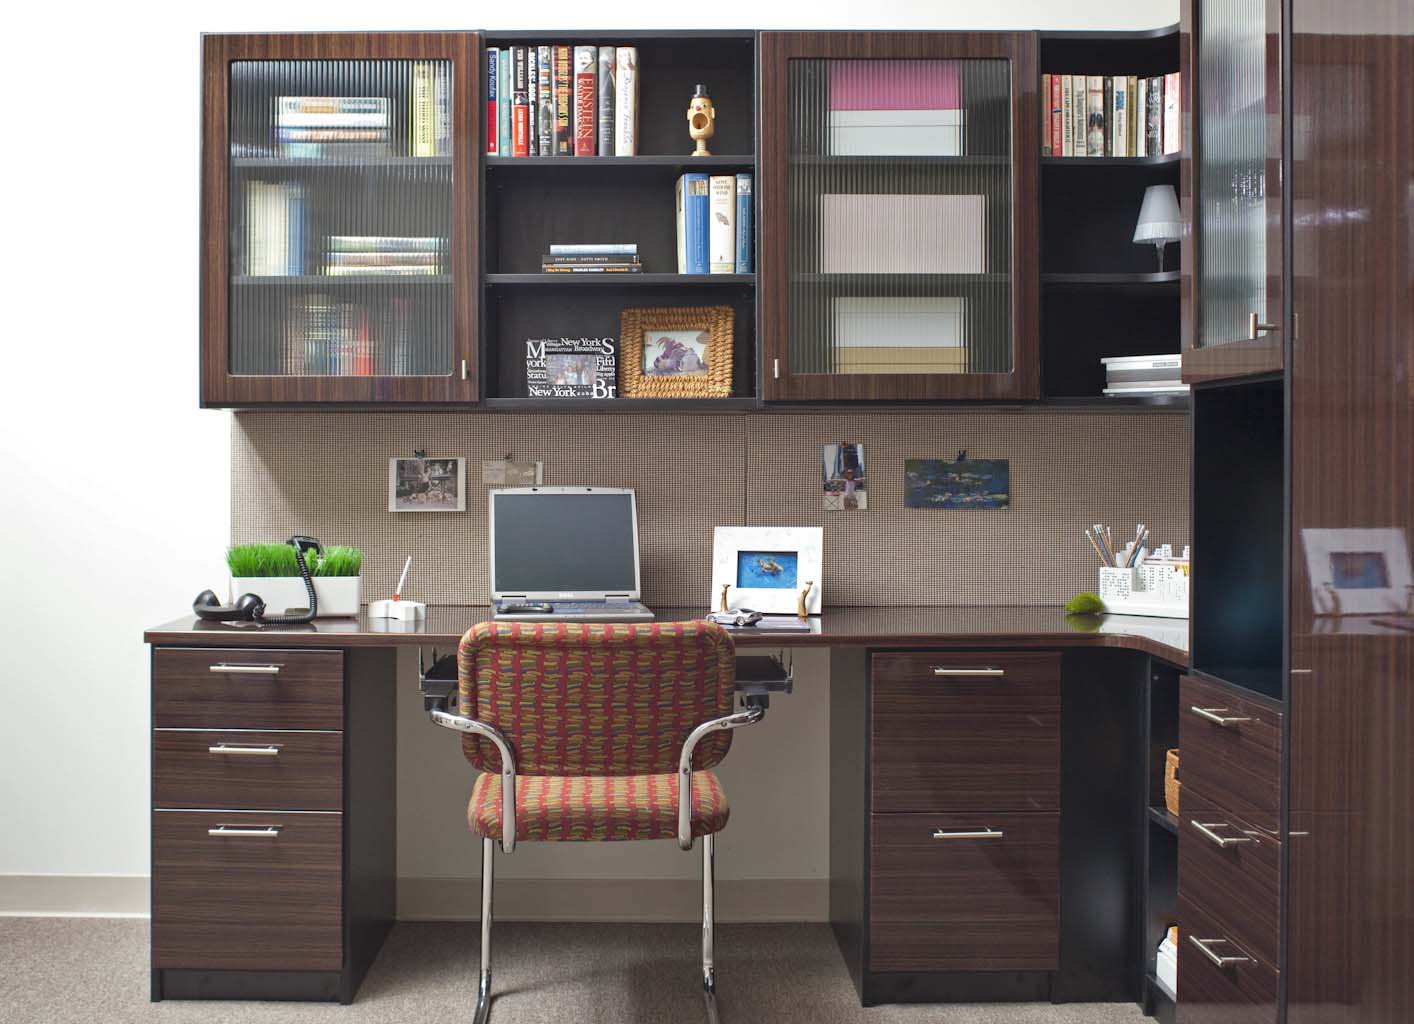 4 Tips for Keeping Your Home Office Organized